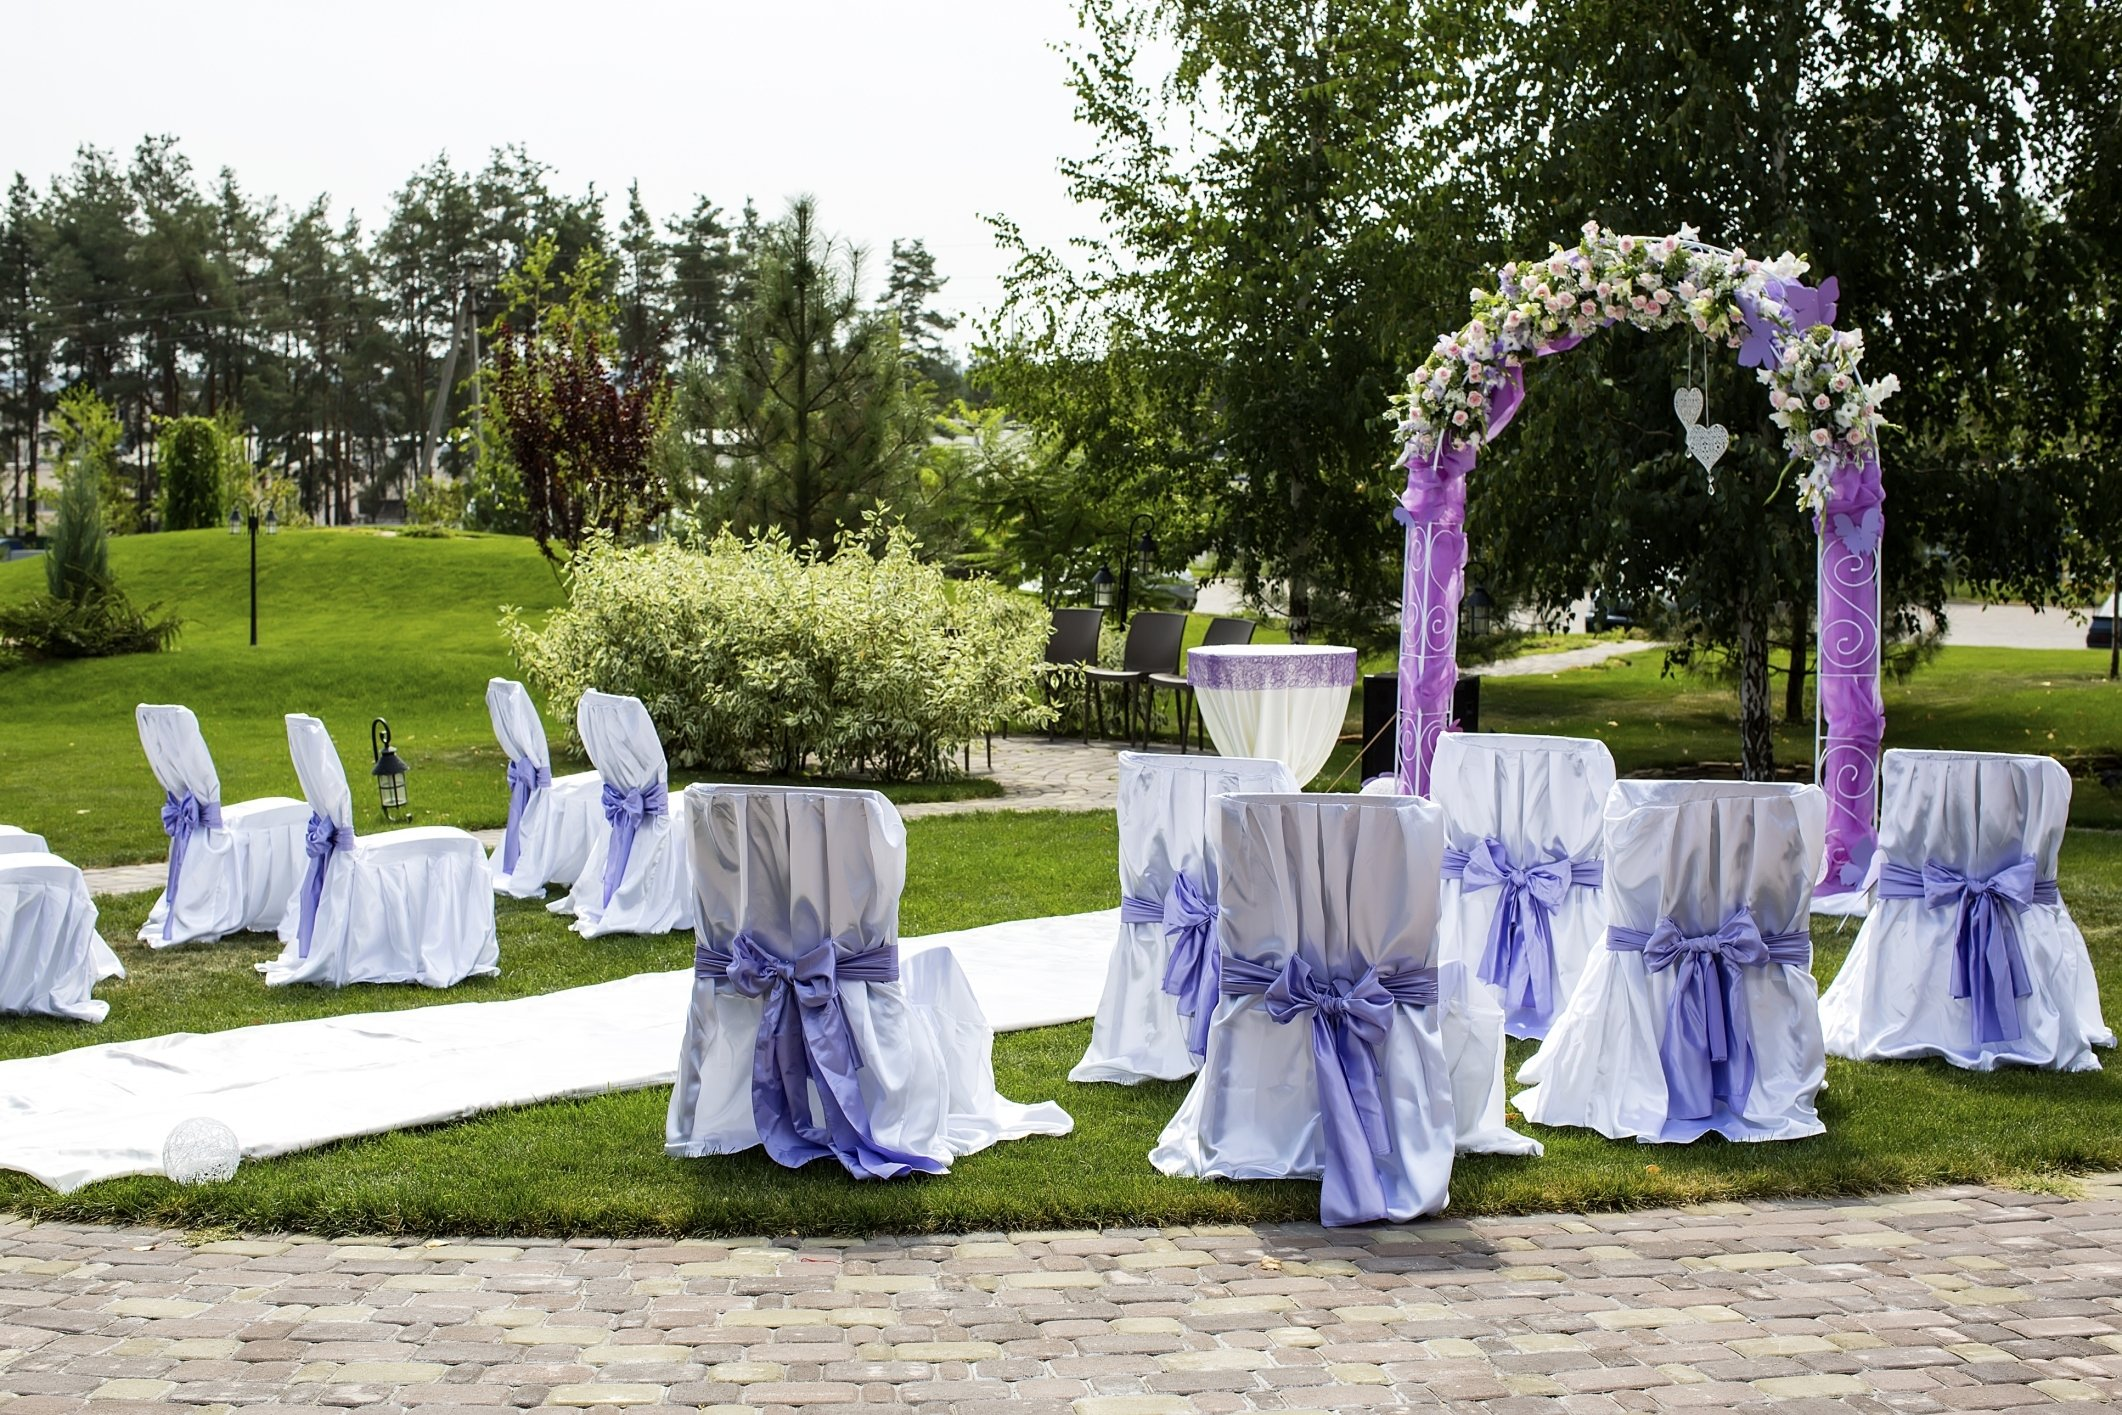 10 Attractive Ideas For A Small Wedding the pros and cons of small wedding venues easy weddings uk 50th 1 2020